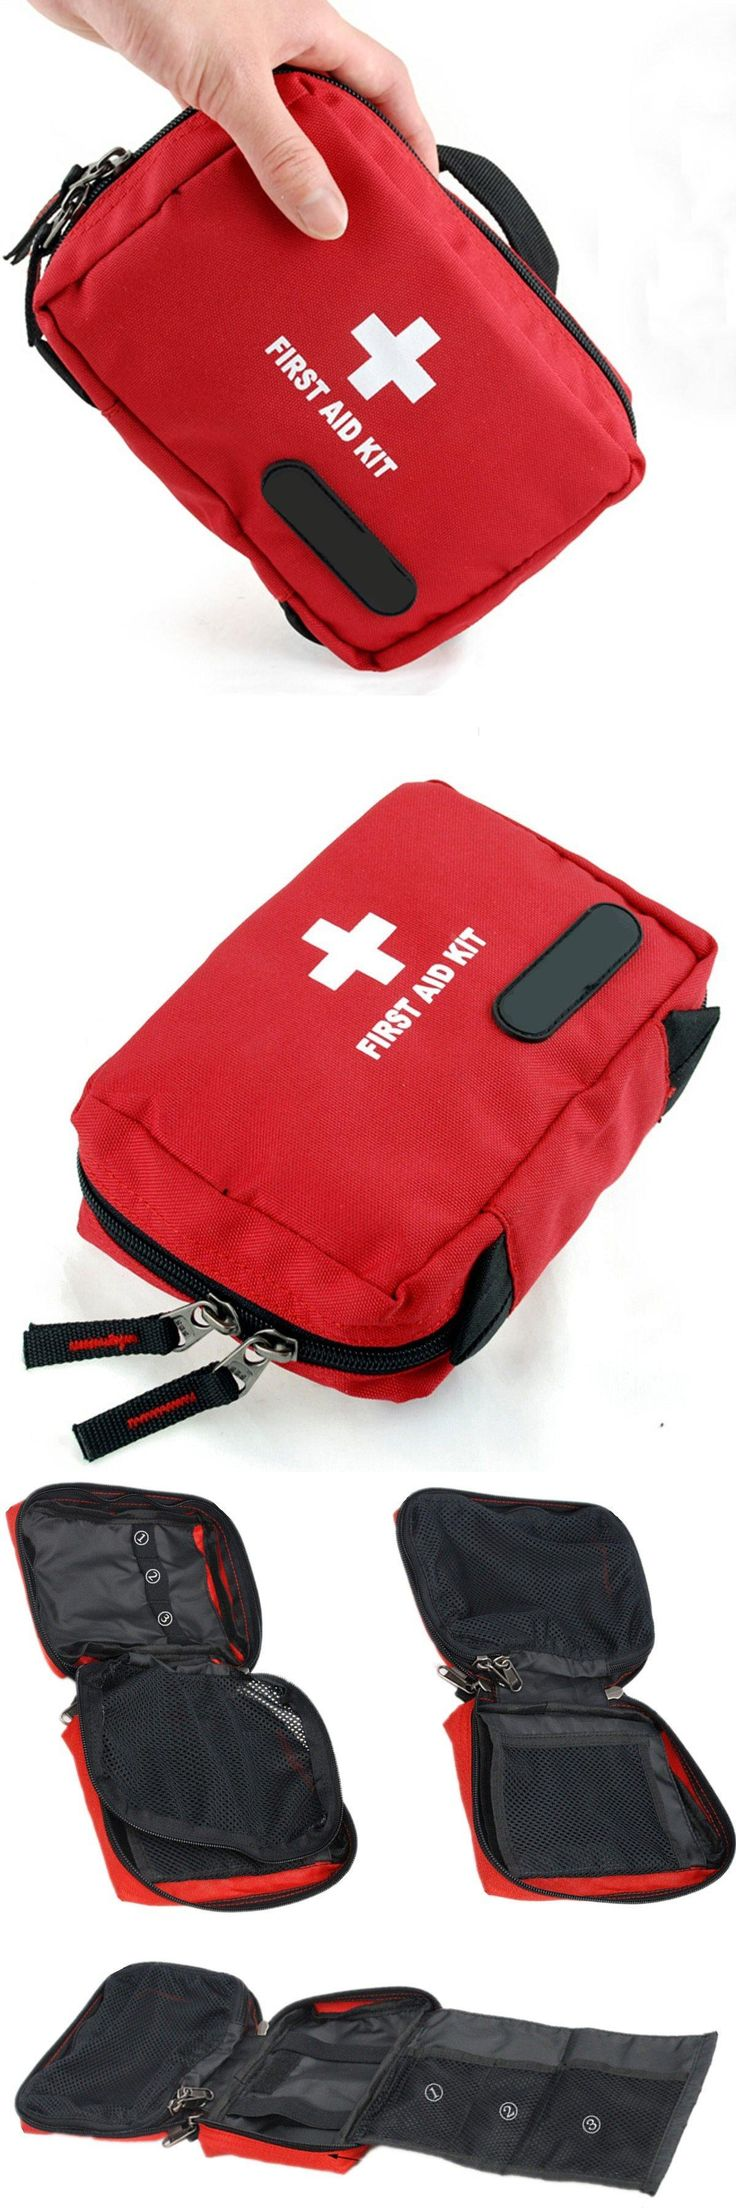 [Visit to Buy] Outdoor Tactical Emergency Medical First Aid Pouch Bags Survival Pack Rescue Kit Empty Bag for outdoor Safety and Survival #Advertisement